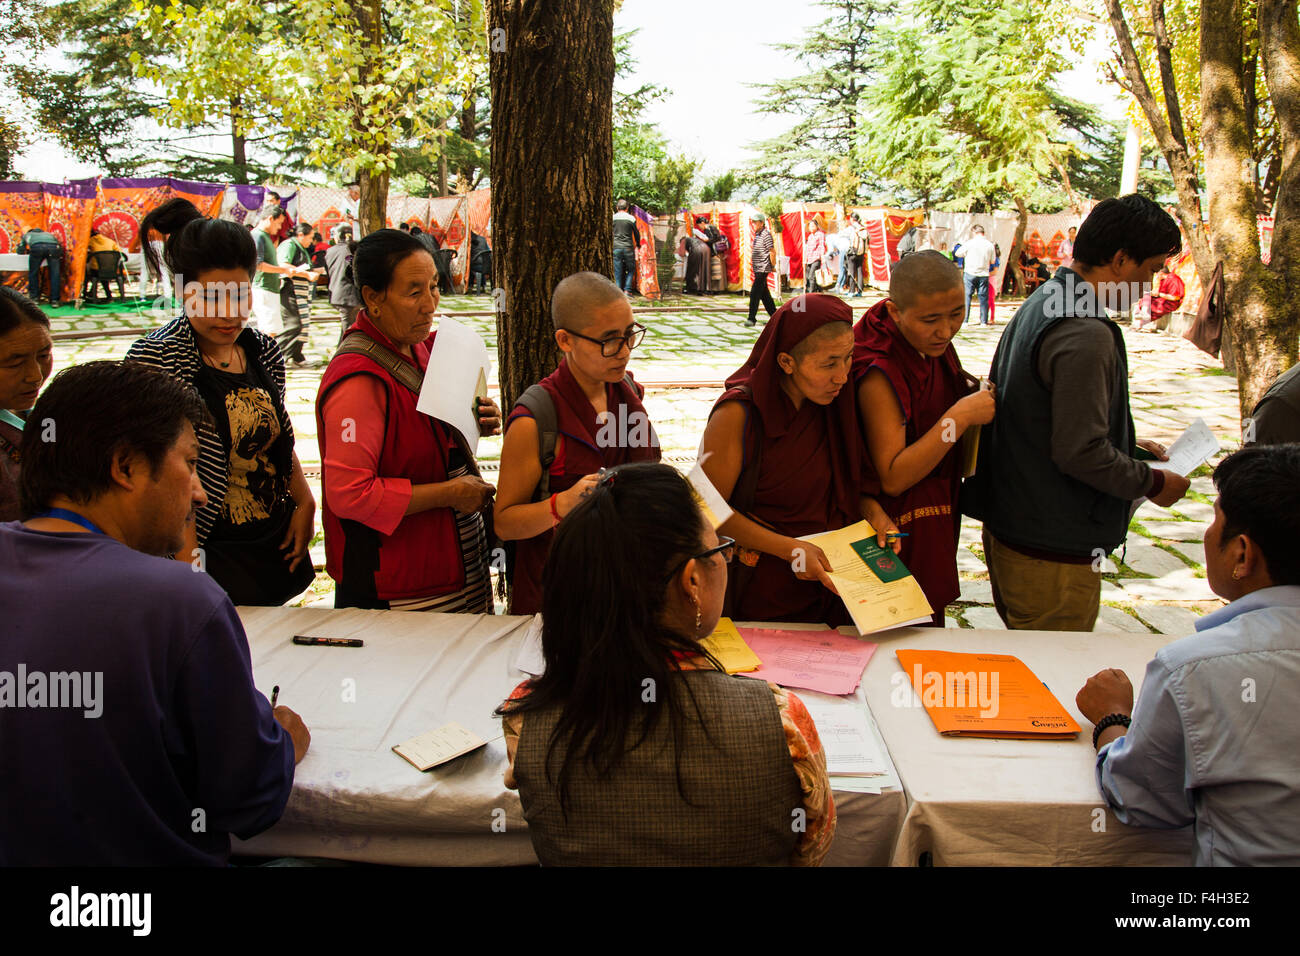 Mcleodganj, Himachal Pradesh. 18 october 2015. Exiled tibetans casting their vote in the preliminary round of parliamentary - Stock Image